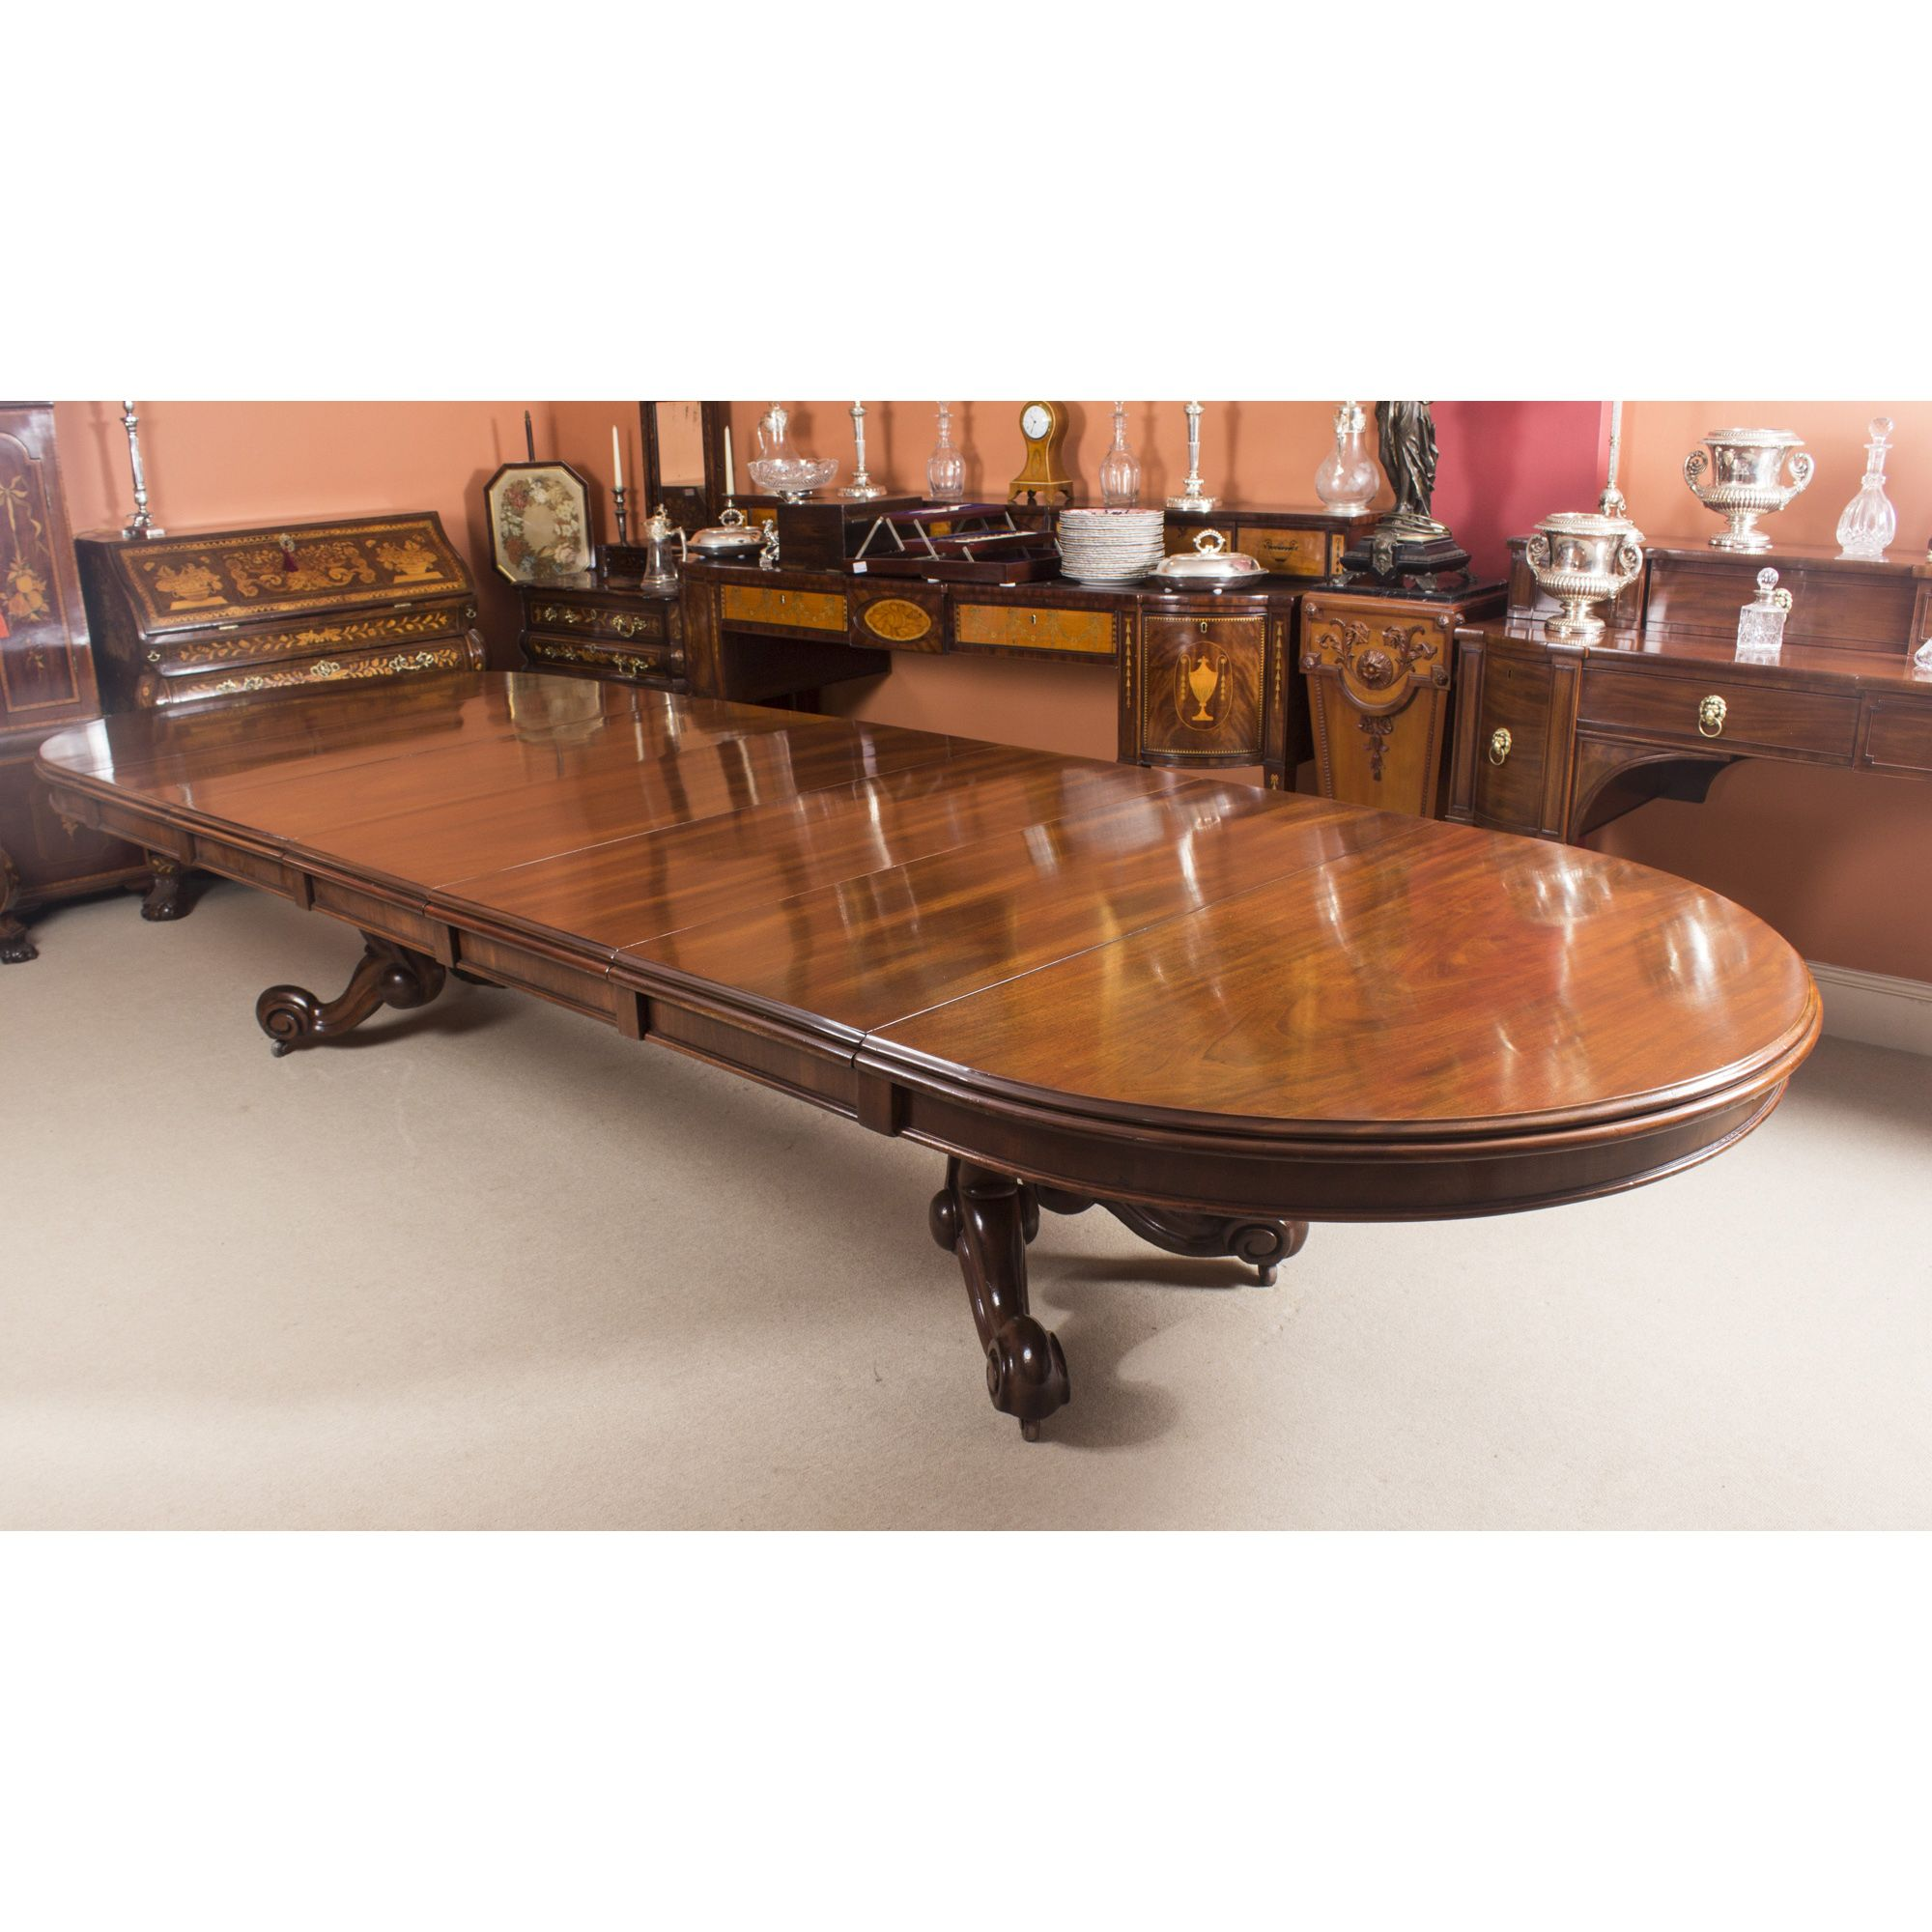 52dd744aaecb4 Antique Victorian 14 ft Mahogany Twin Base Extending Dining Table ...